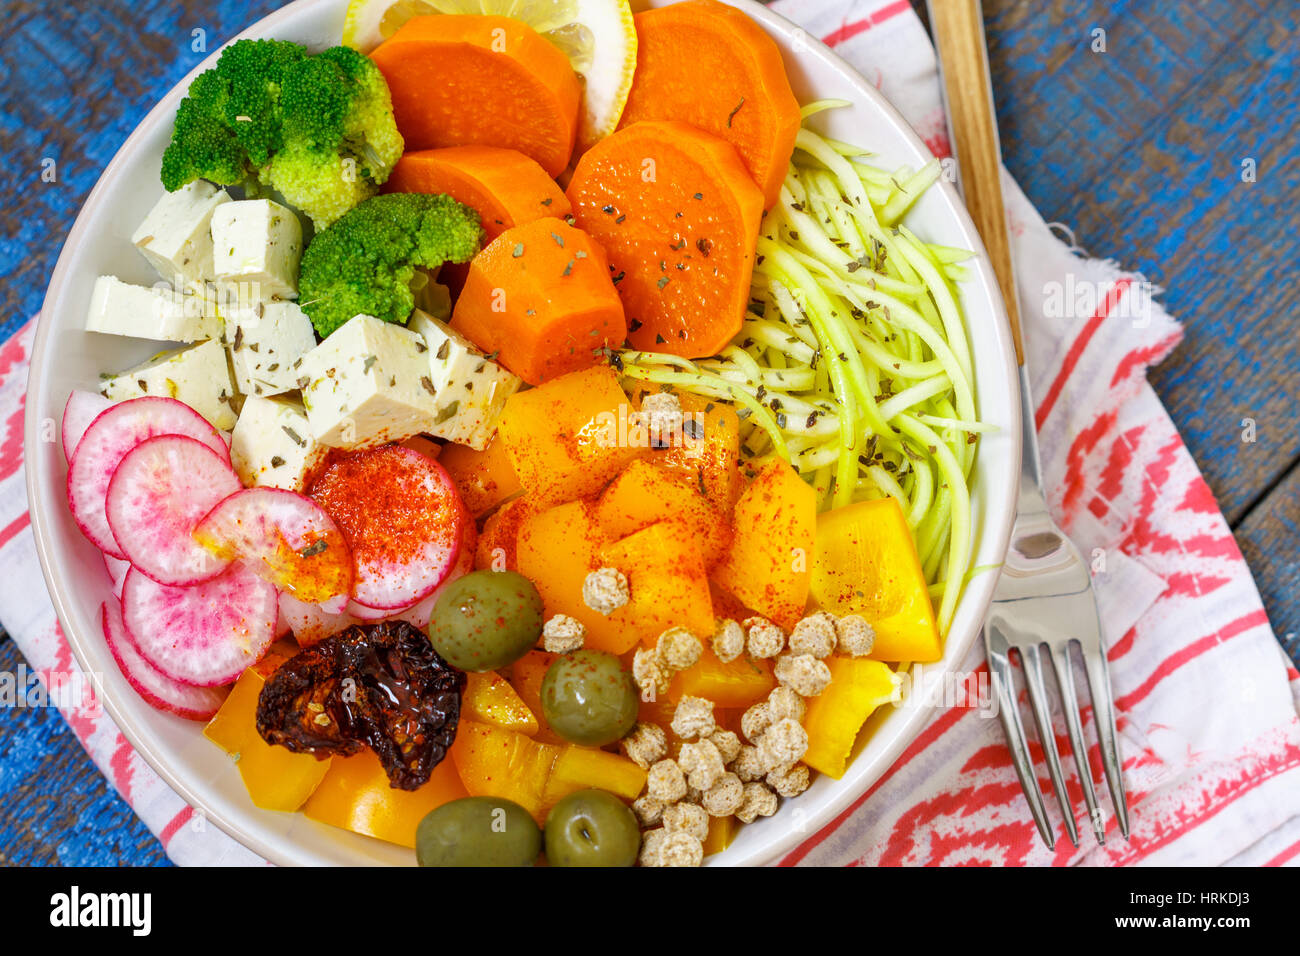 Vegan Buddha bowl - zucchini pasta, sweet potatoes, tofu with vegetables. Love for a healthy vegan food concept - Stock Image